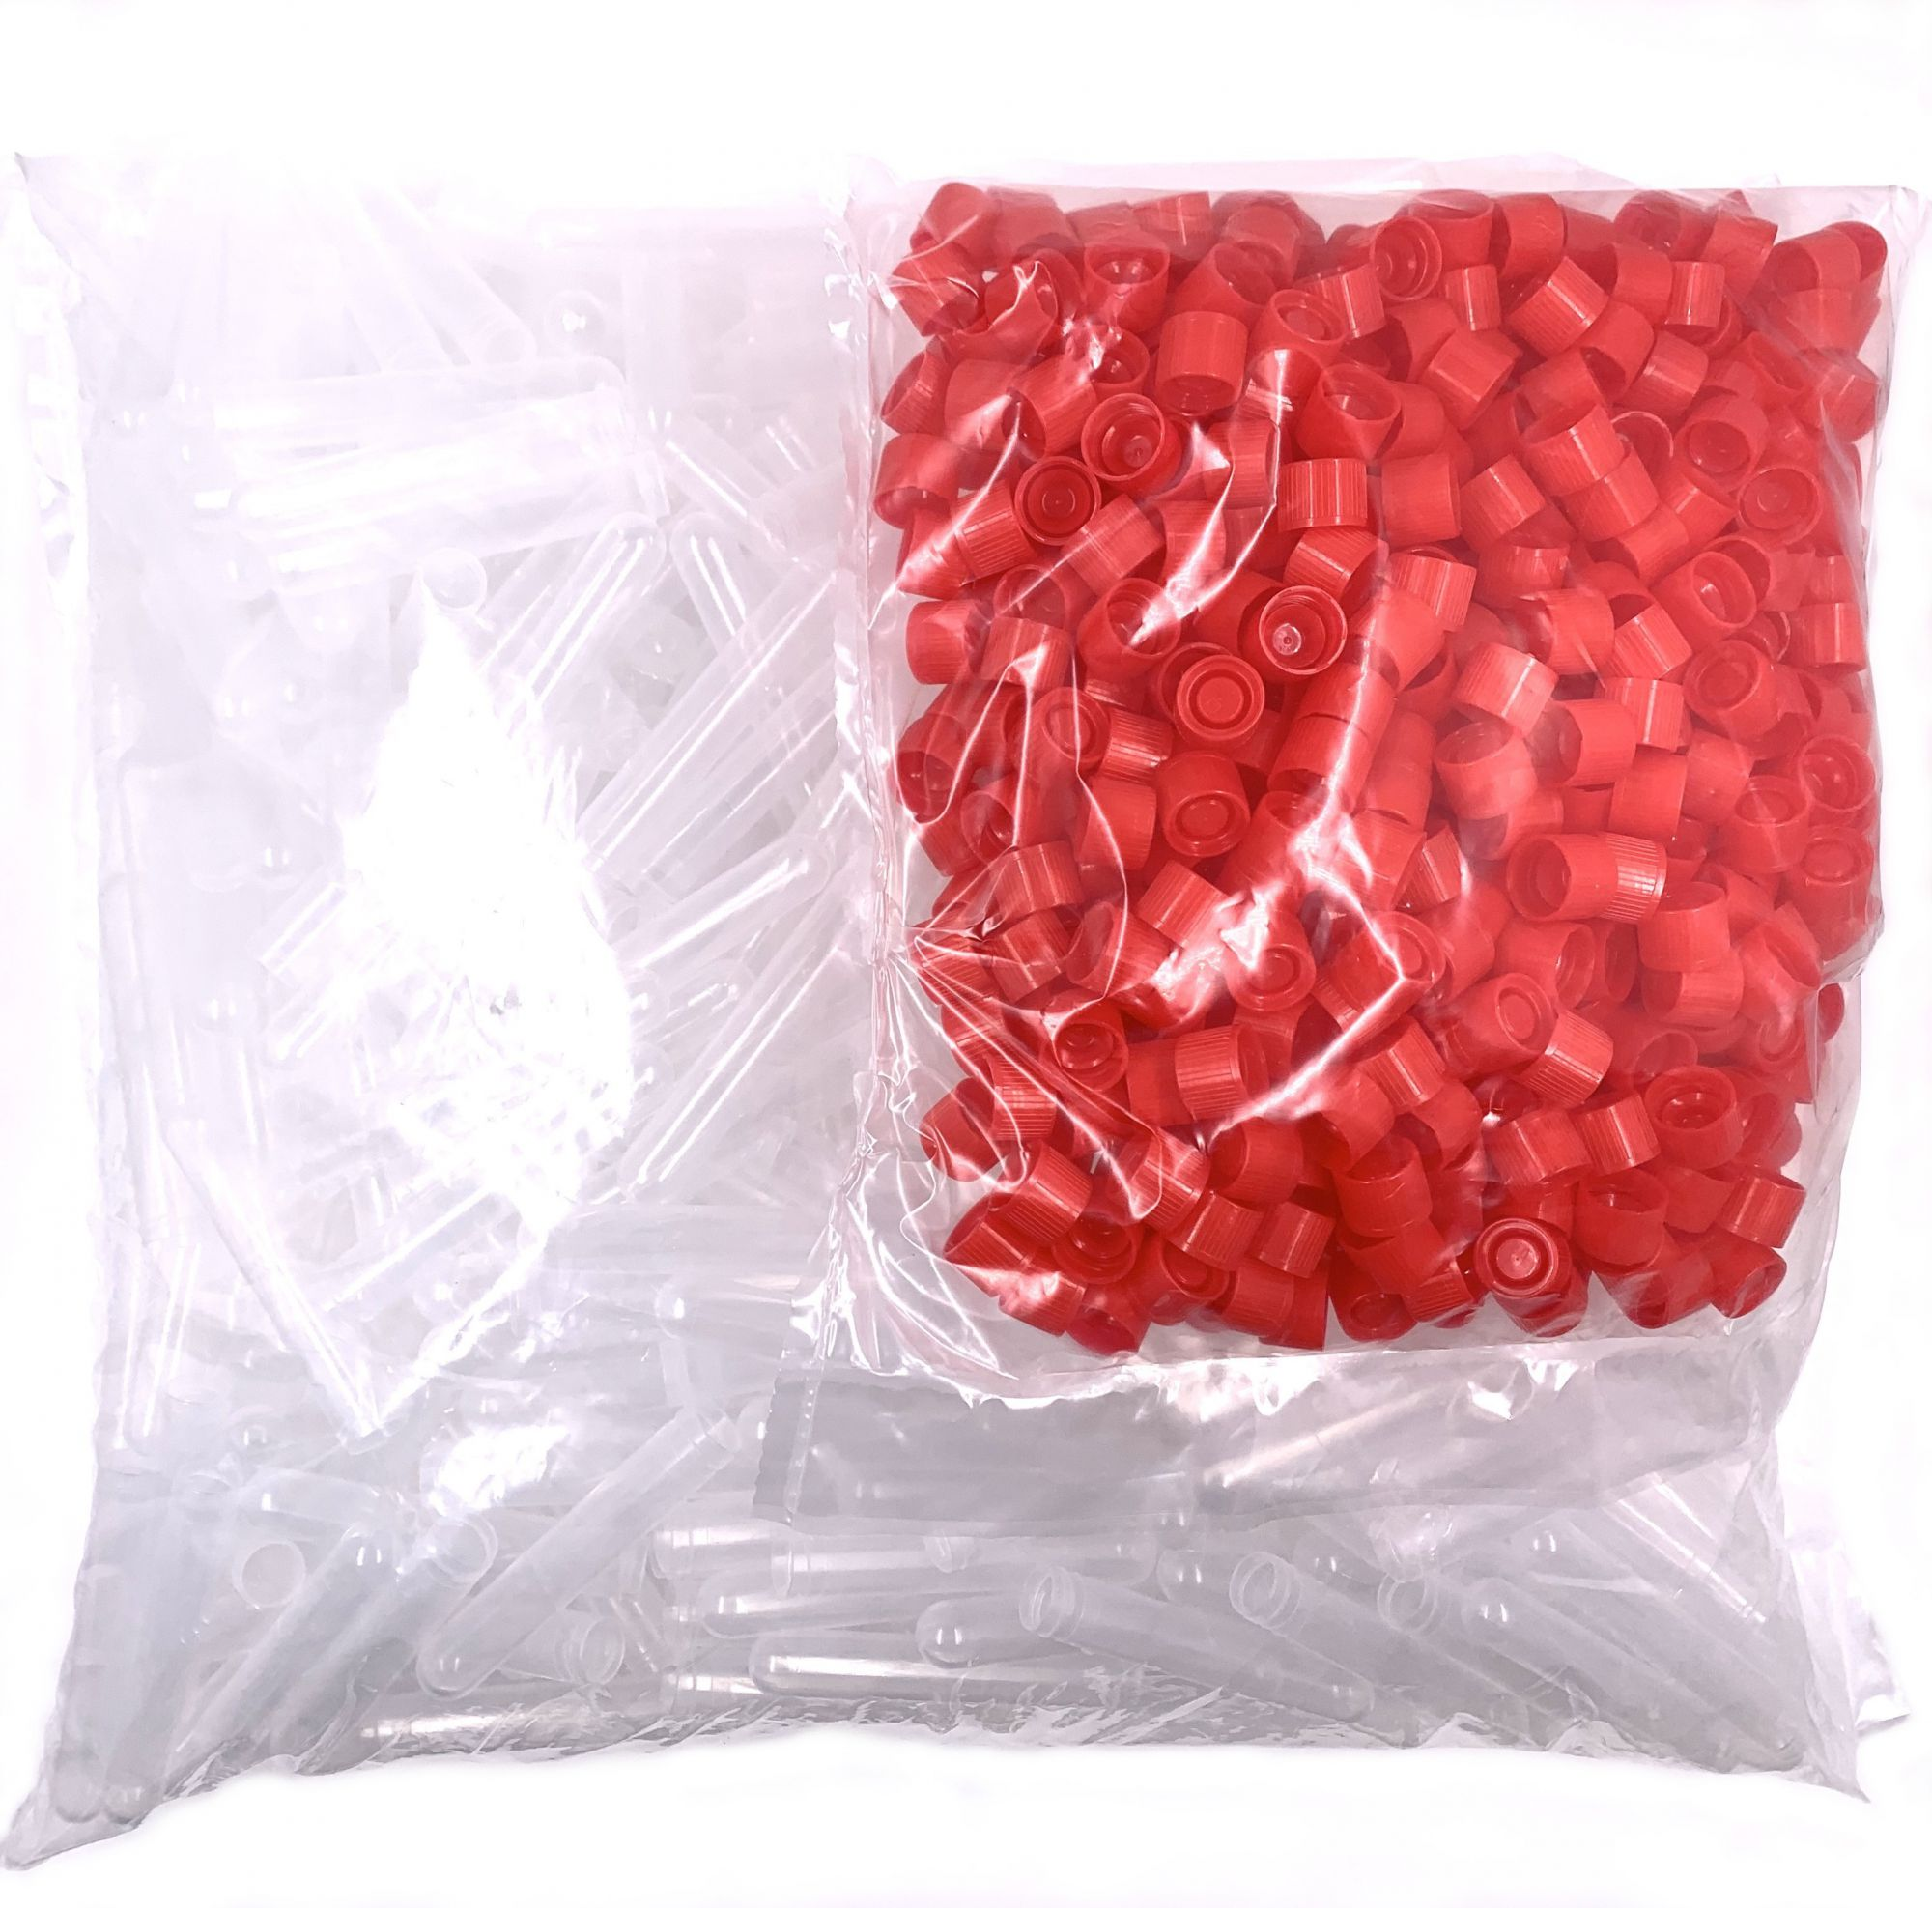 centrifugetubes 13ml with red cap 500pcsbag